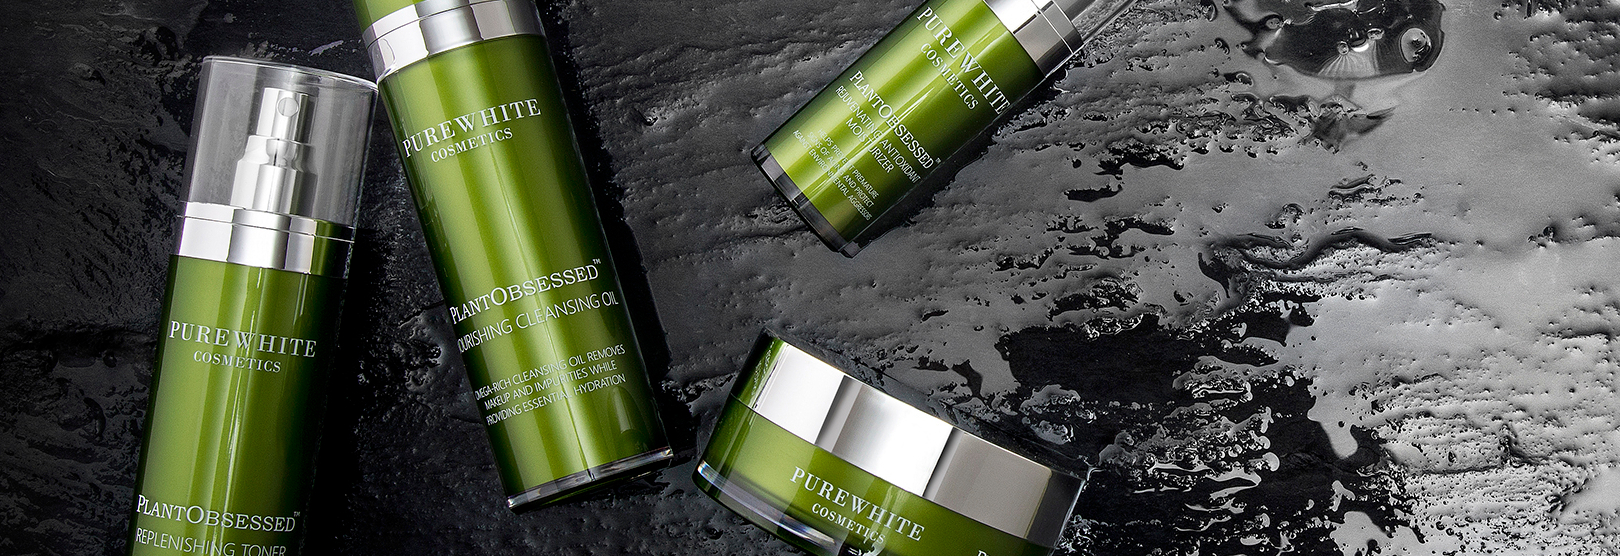 Explore Pure White's most advanced collection made with the finest and most potent natural ingredients.